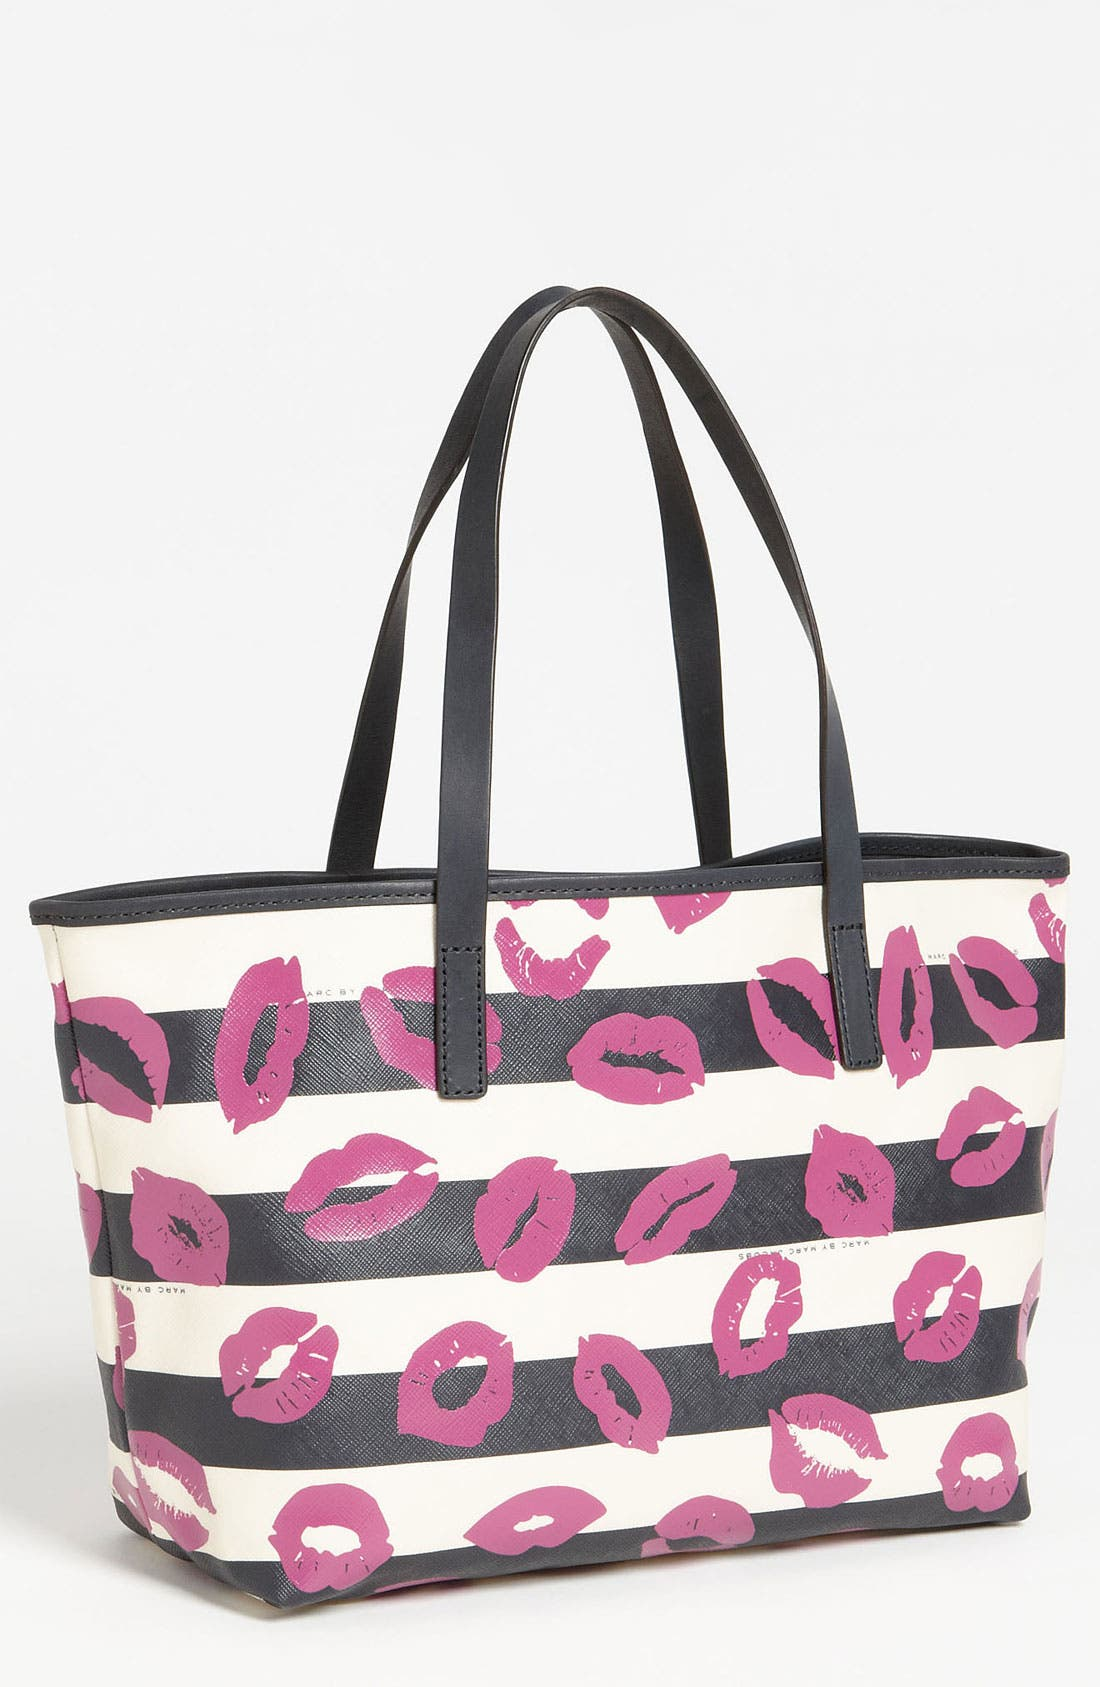 Alternate Image 1 Selected - MARC BY MARC JACOBS 'Eazy - Small' Tote